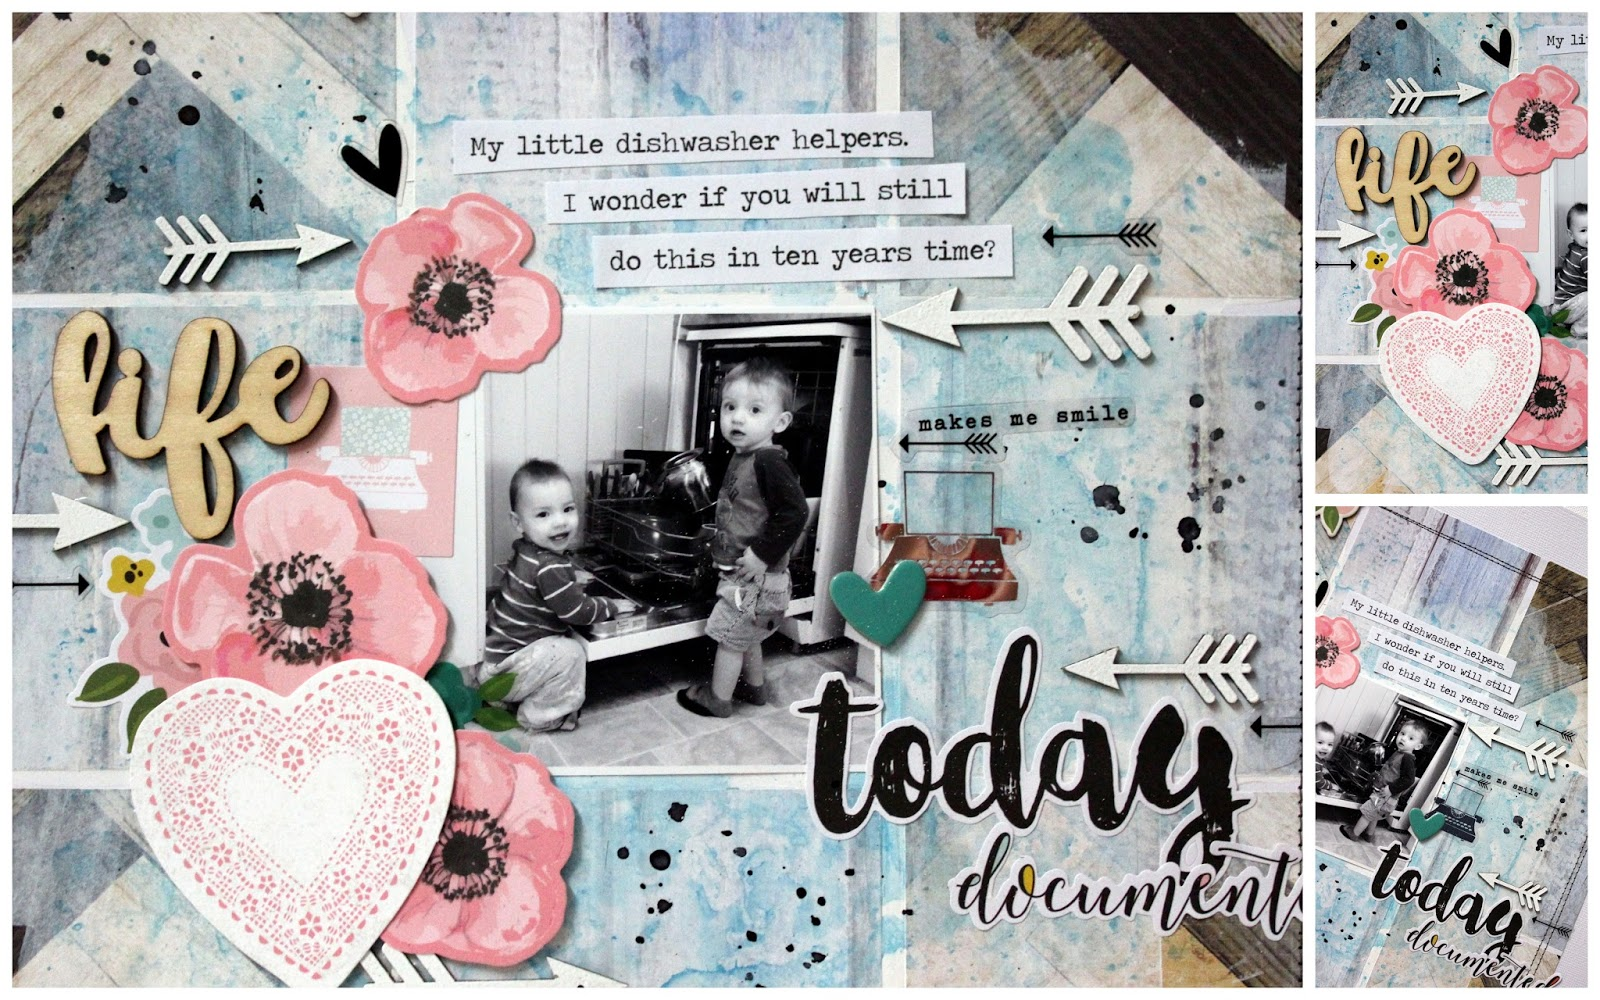 How to delete scrapbook photos google+ - I Have To Admit I Rarely Use Pink With A House Full Of Boys It Doesn T Feature Often In My Pages But I M Pleasantly Surprised At The Little Pop Of Colour